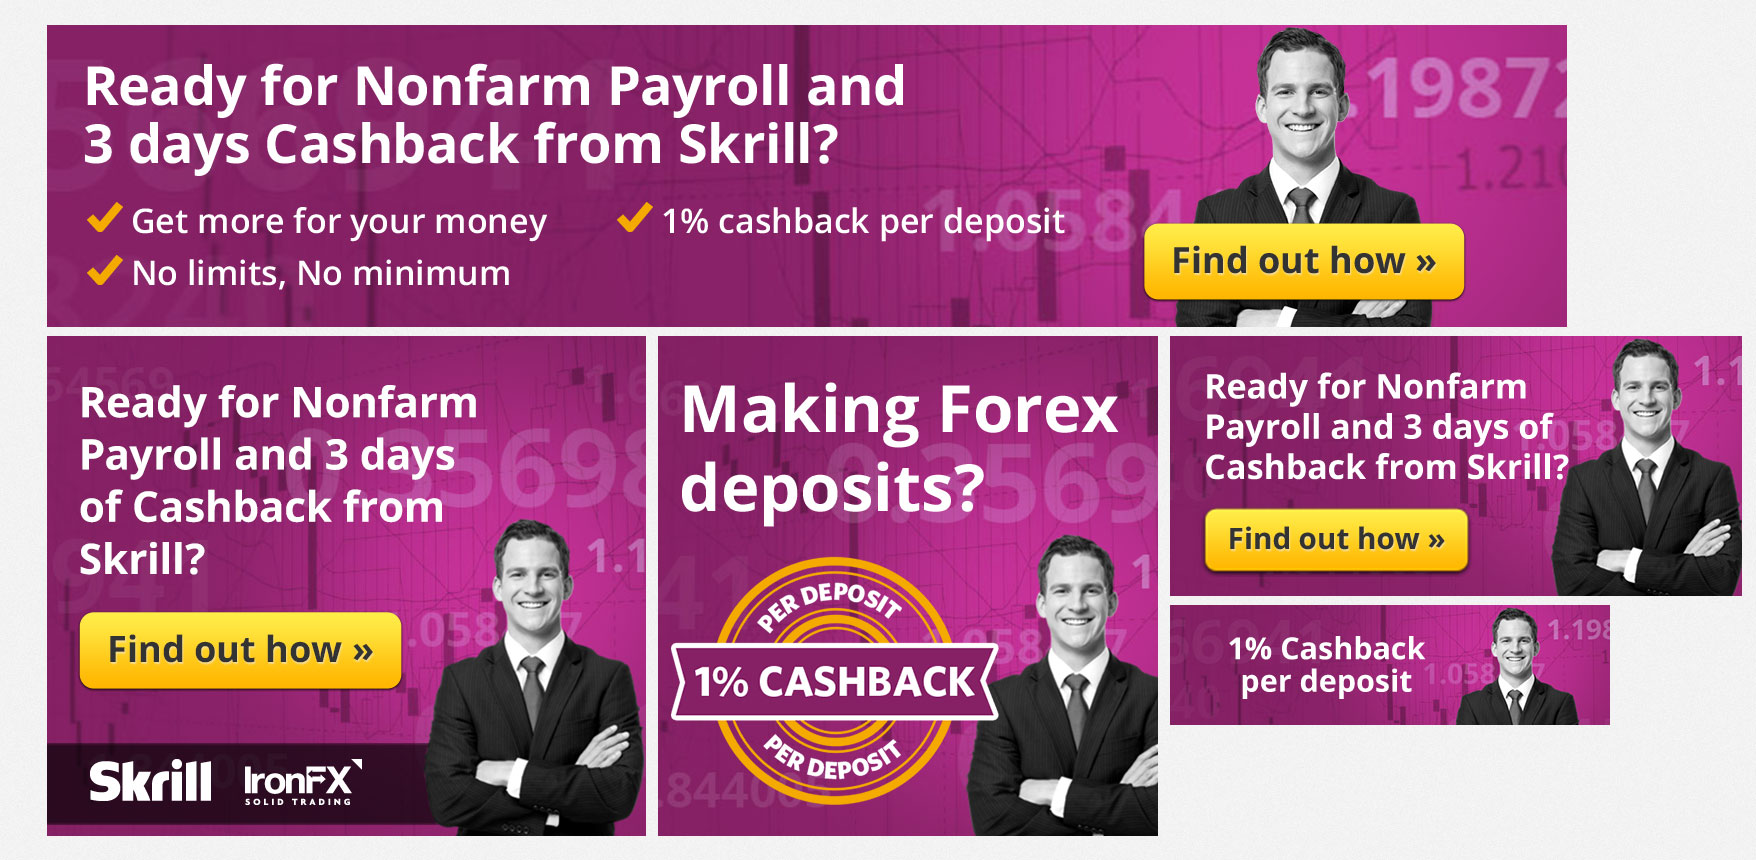 skrill-forex-banners2